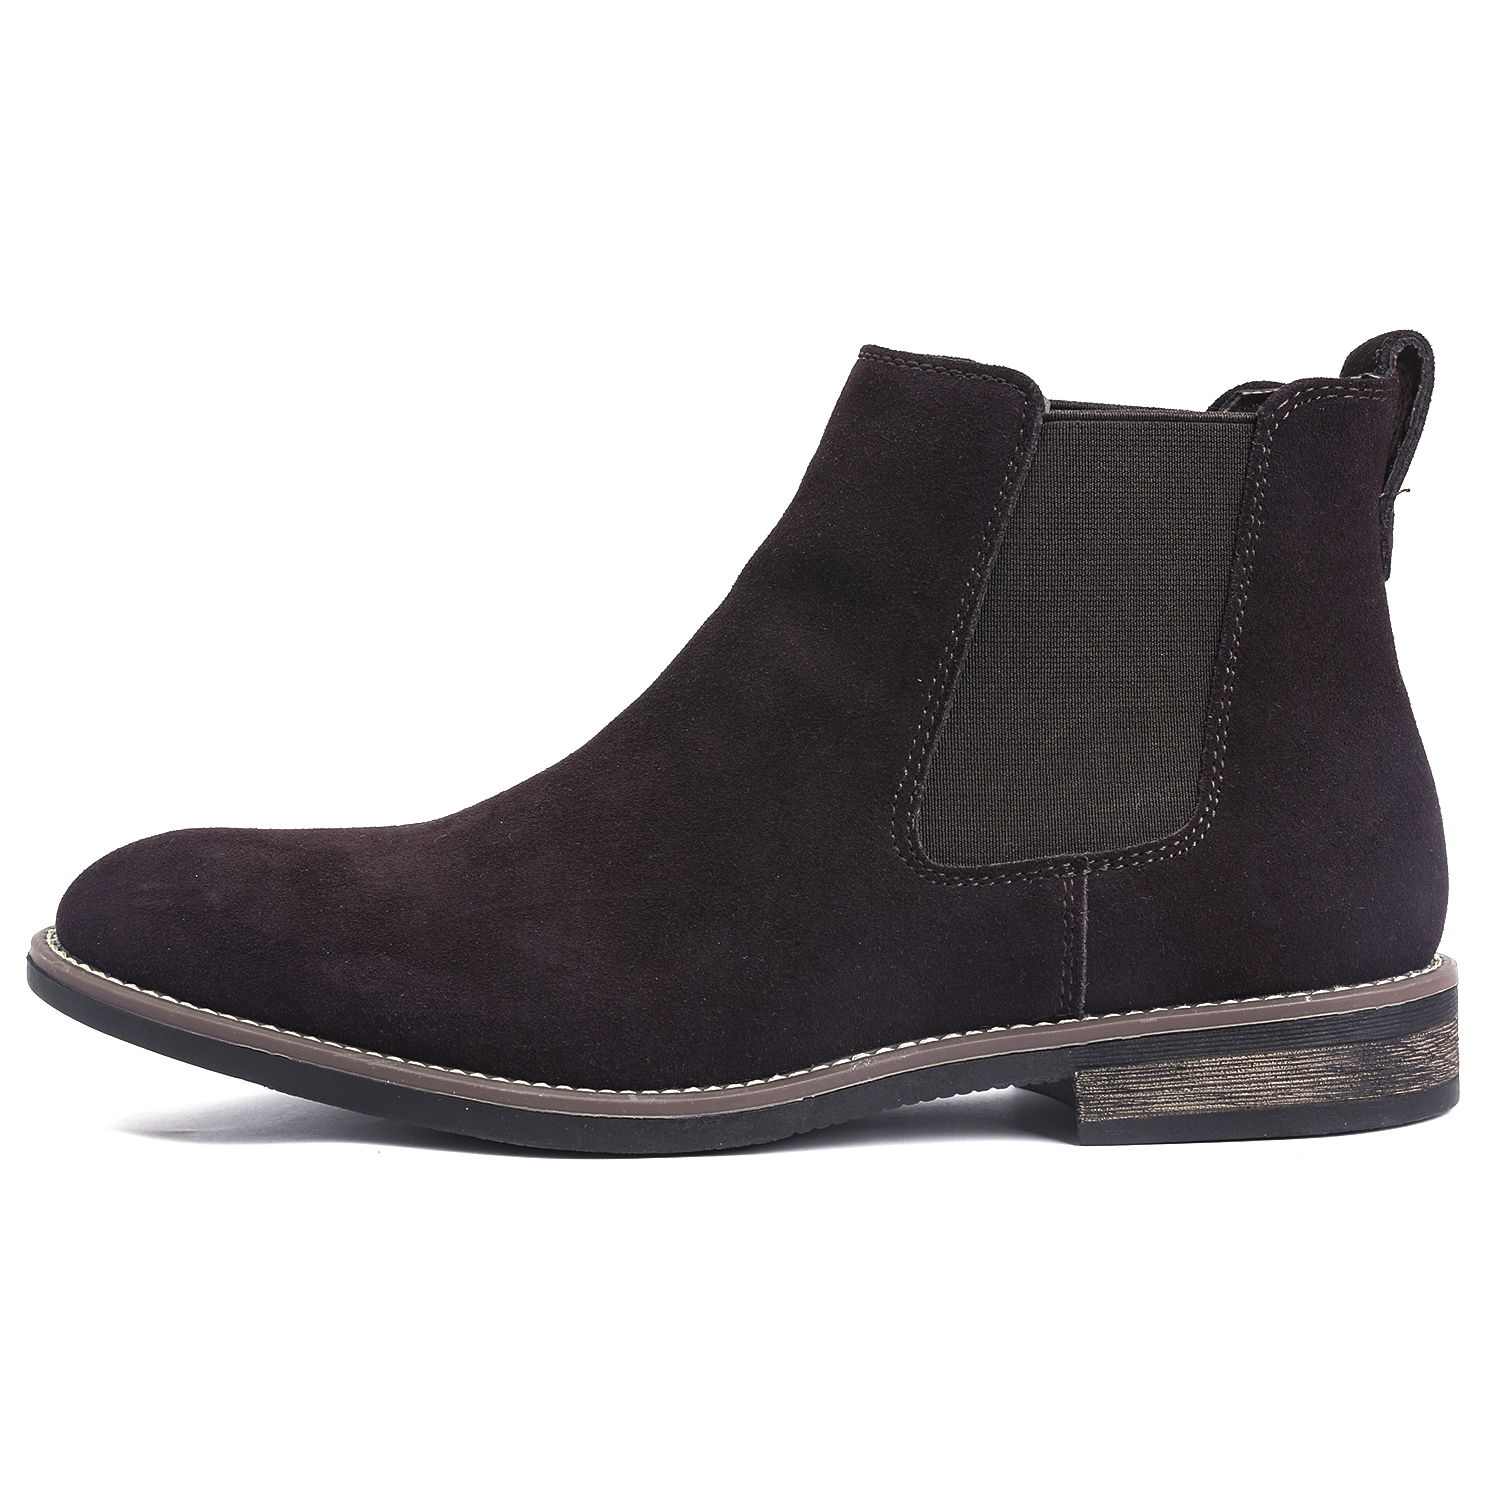 BRUNO-MARC-Men-URBAN-Suede-Leather-Chelsea-Chukka-Dress-Ankle-Boots-Casual-Shoes thumbnail 43